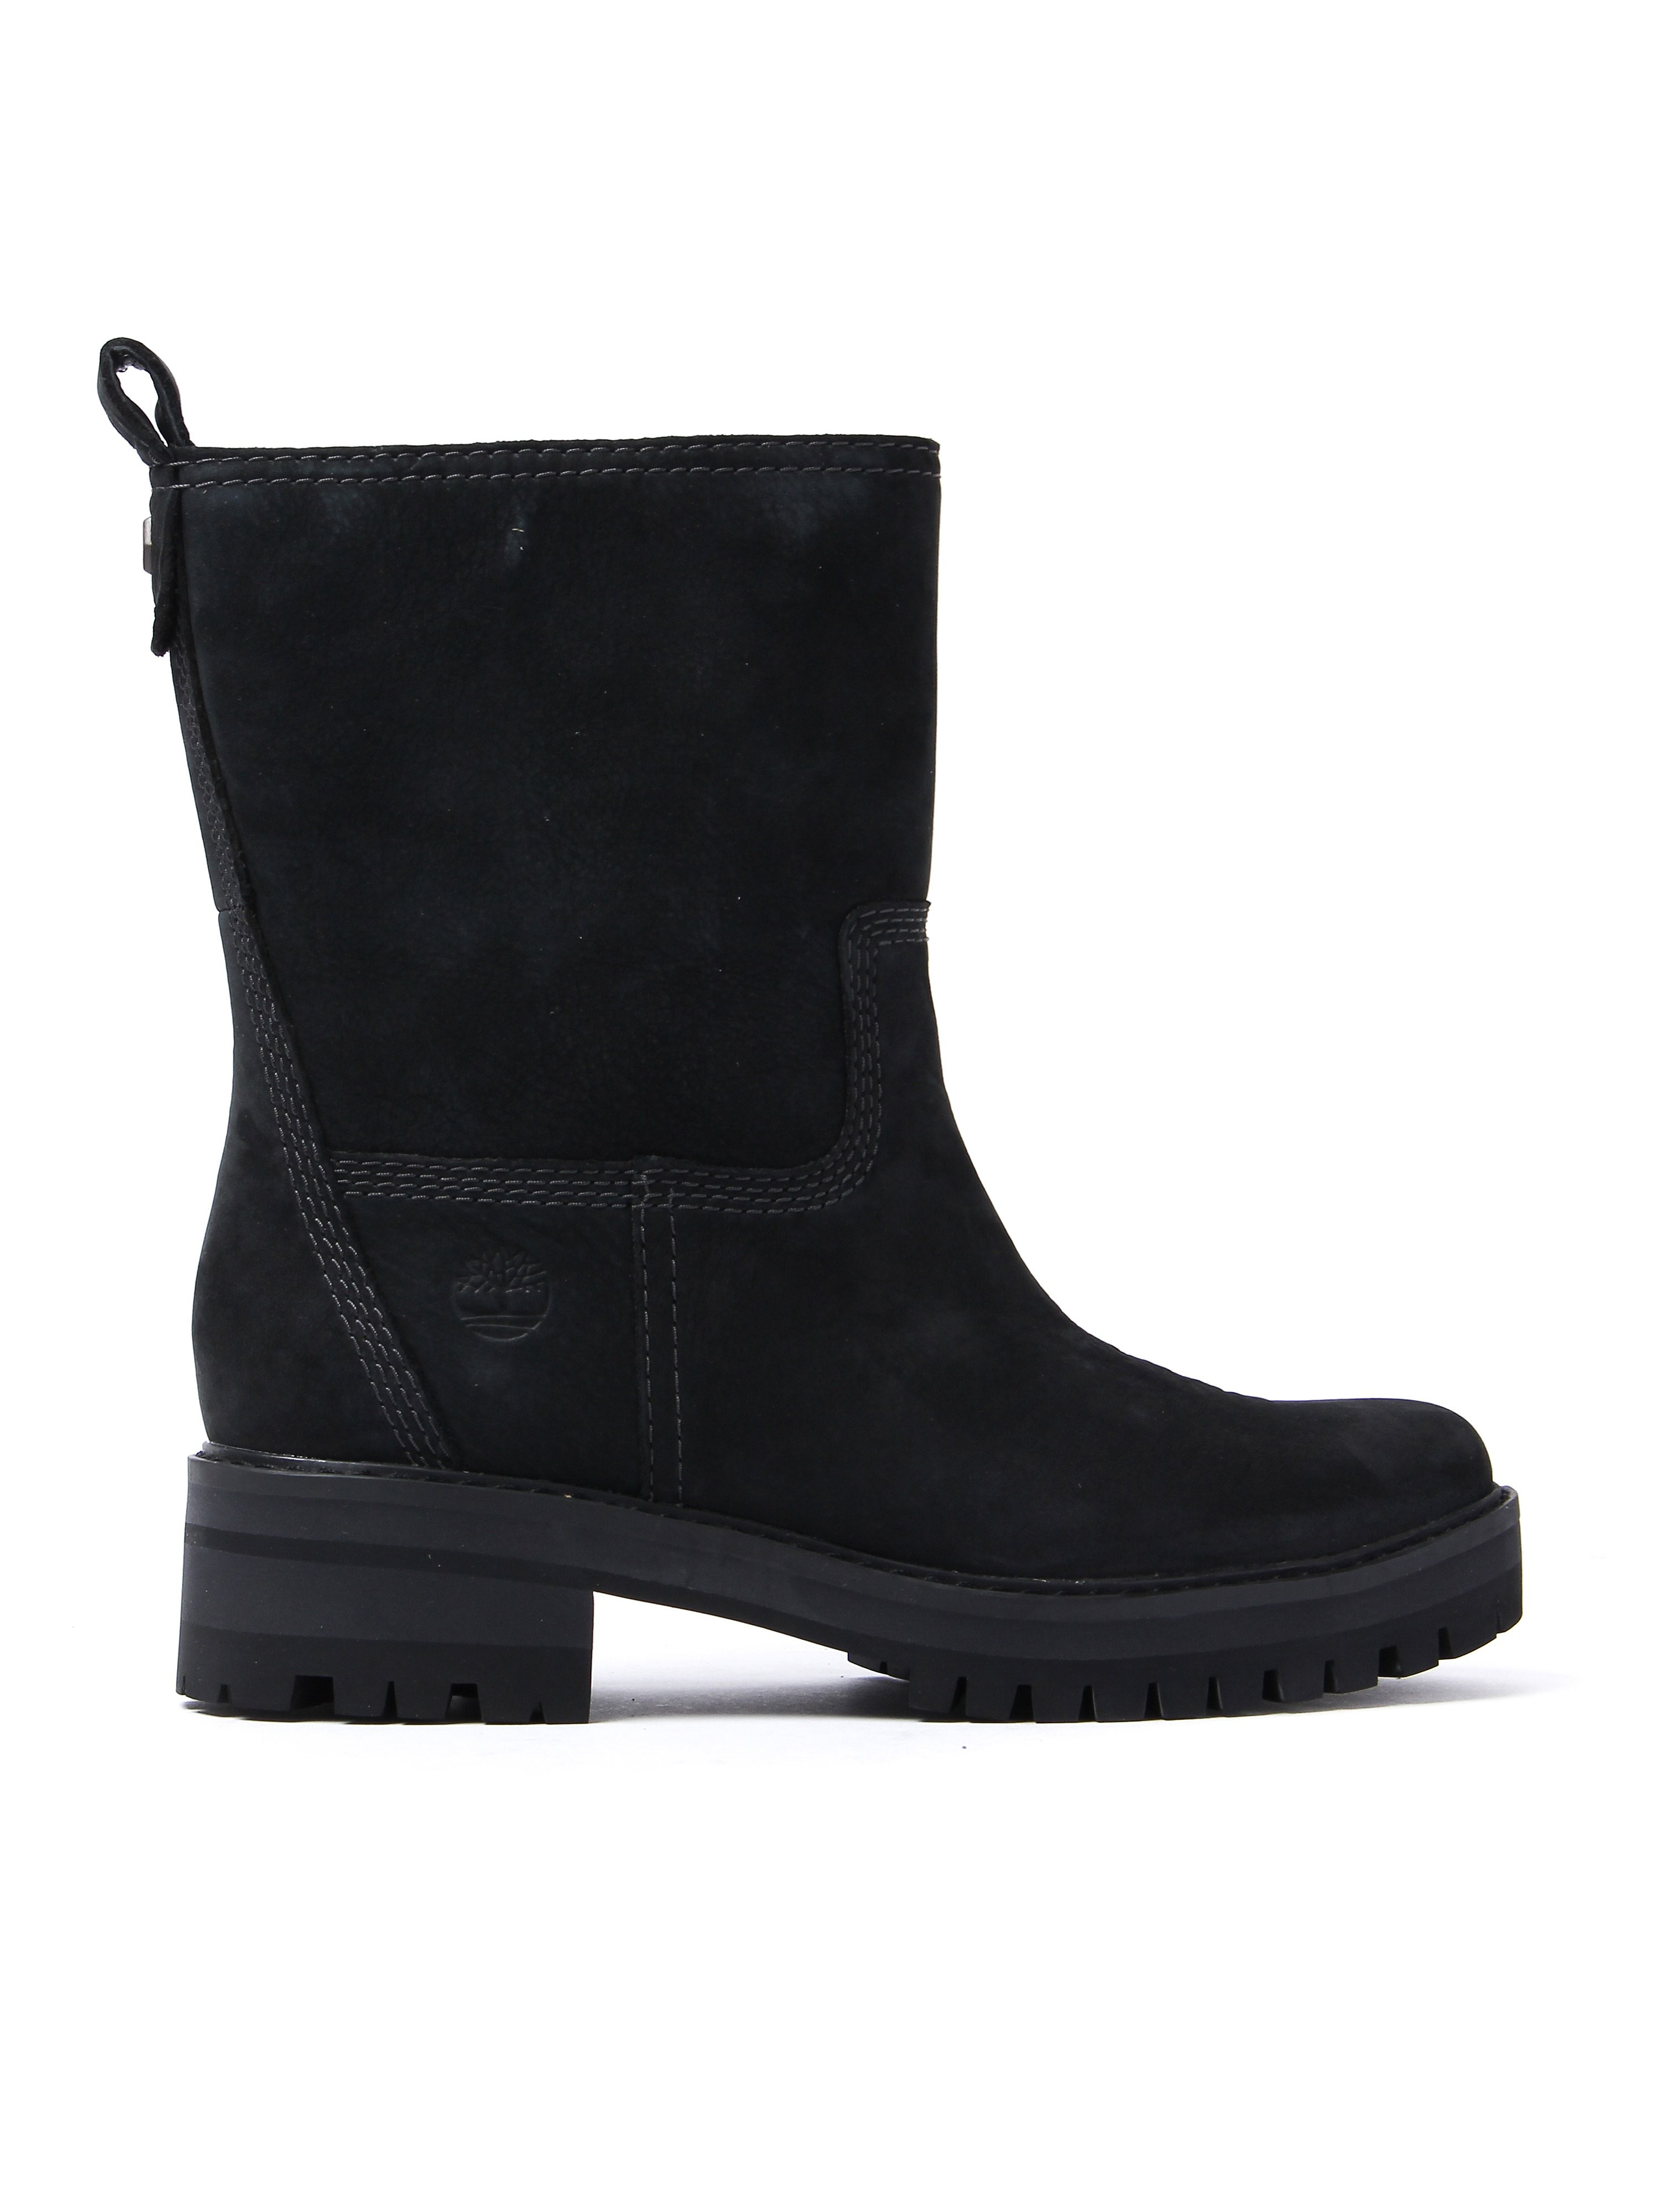 Timberland Women's Courmayeur Valley Mid Boots – Black